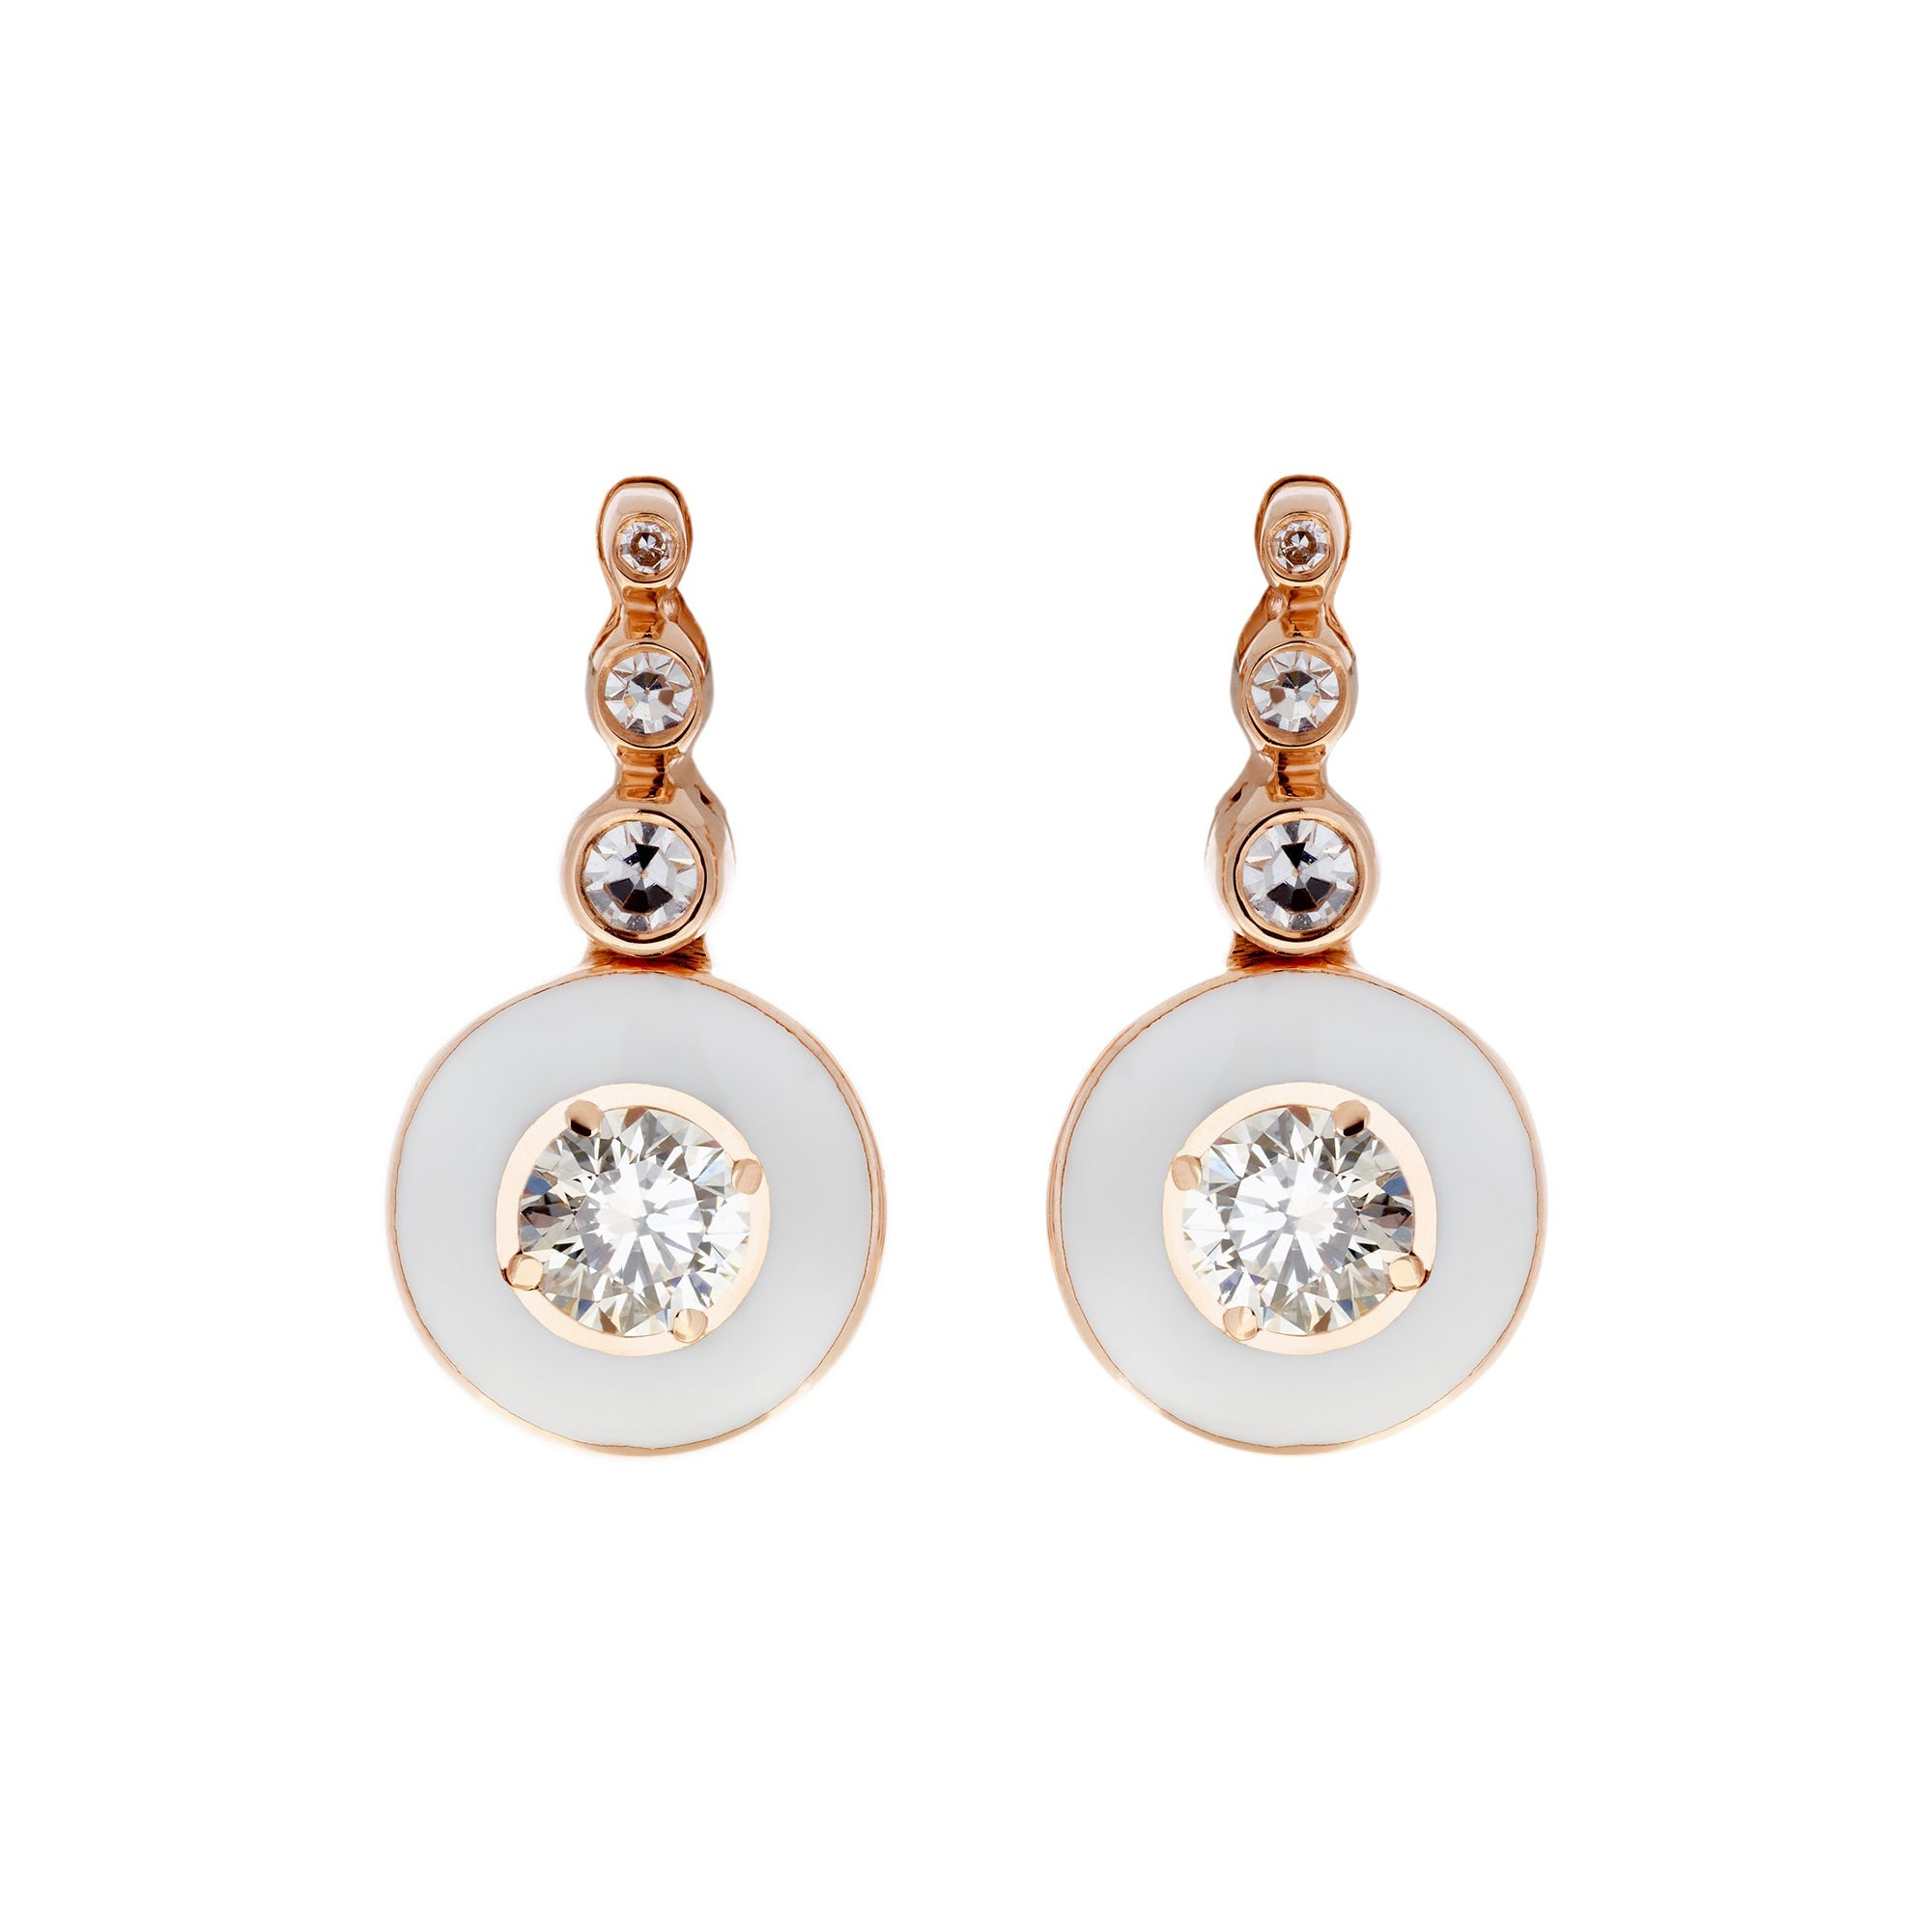 Diamond and Ivory Enamel Earrings by Selim Mouzannar for Broken English Jewelry